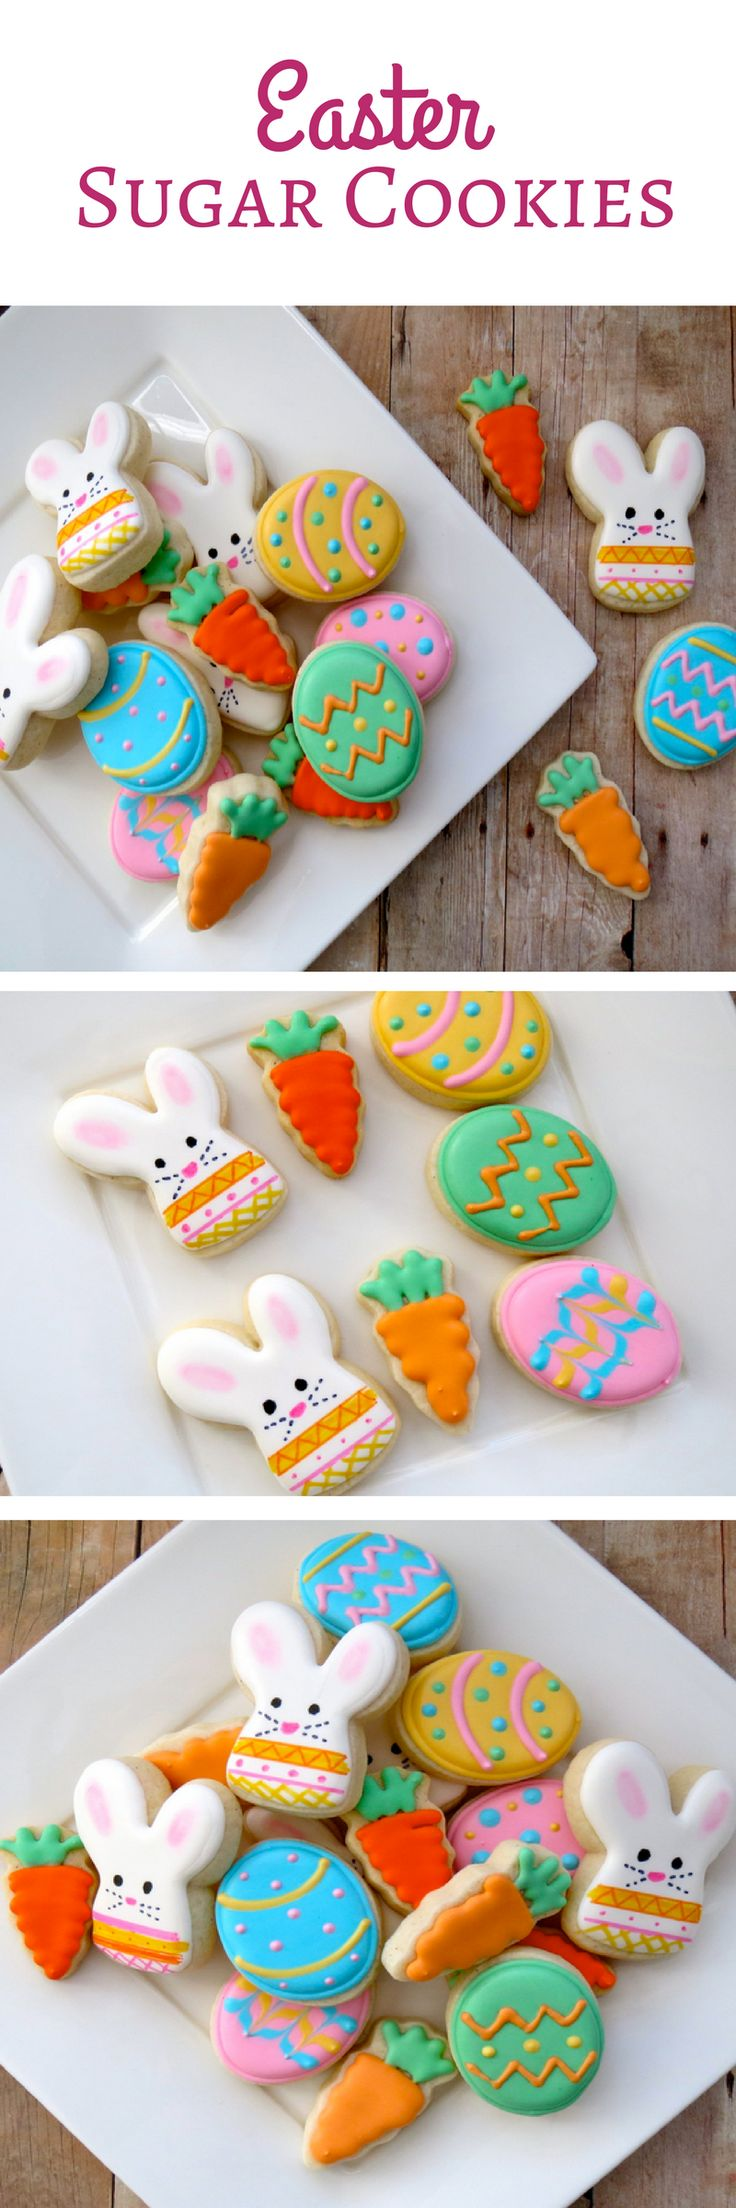 Easter Cookies - Assorted Gift Ideas Easter Basket Idea #affiliate